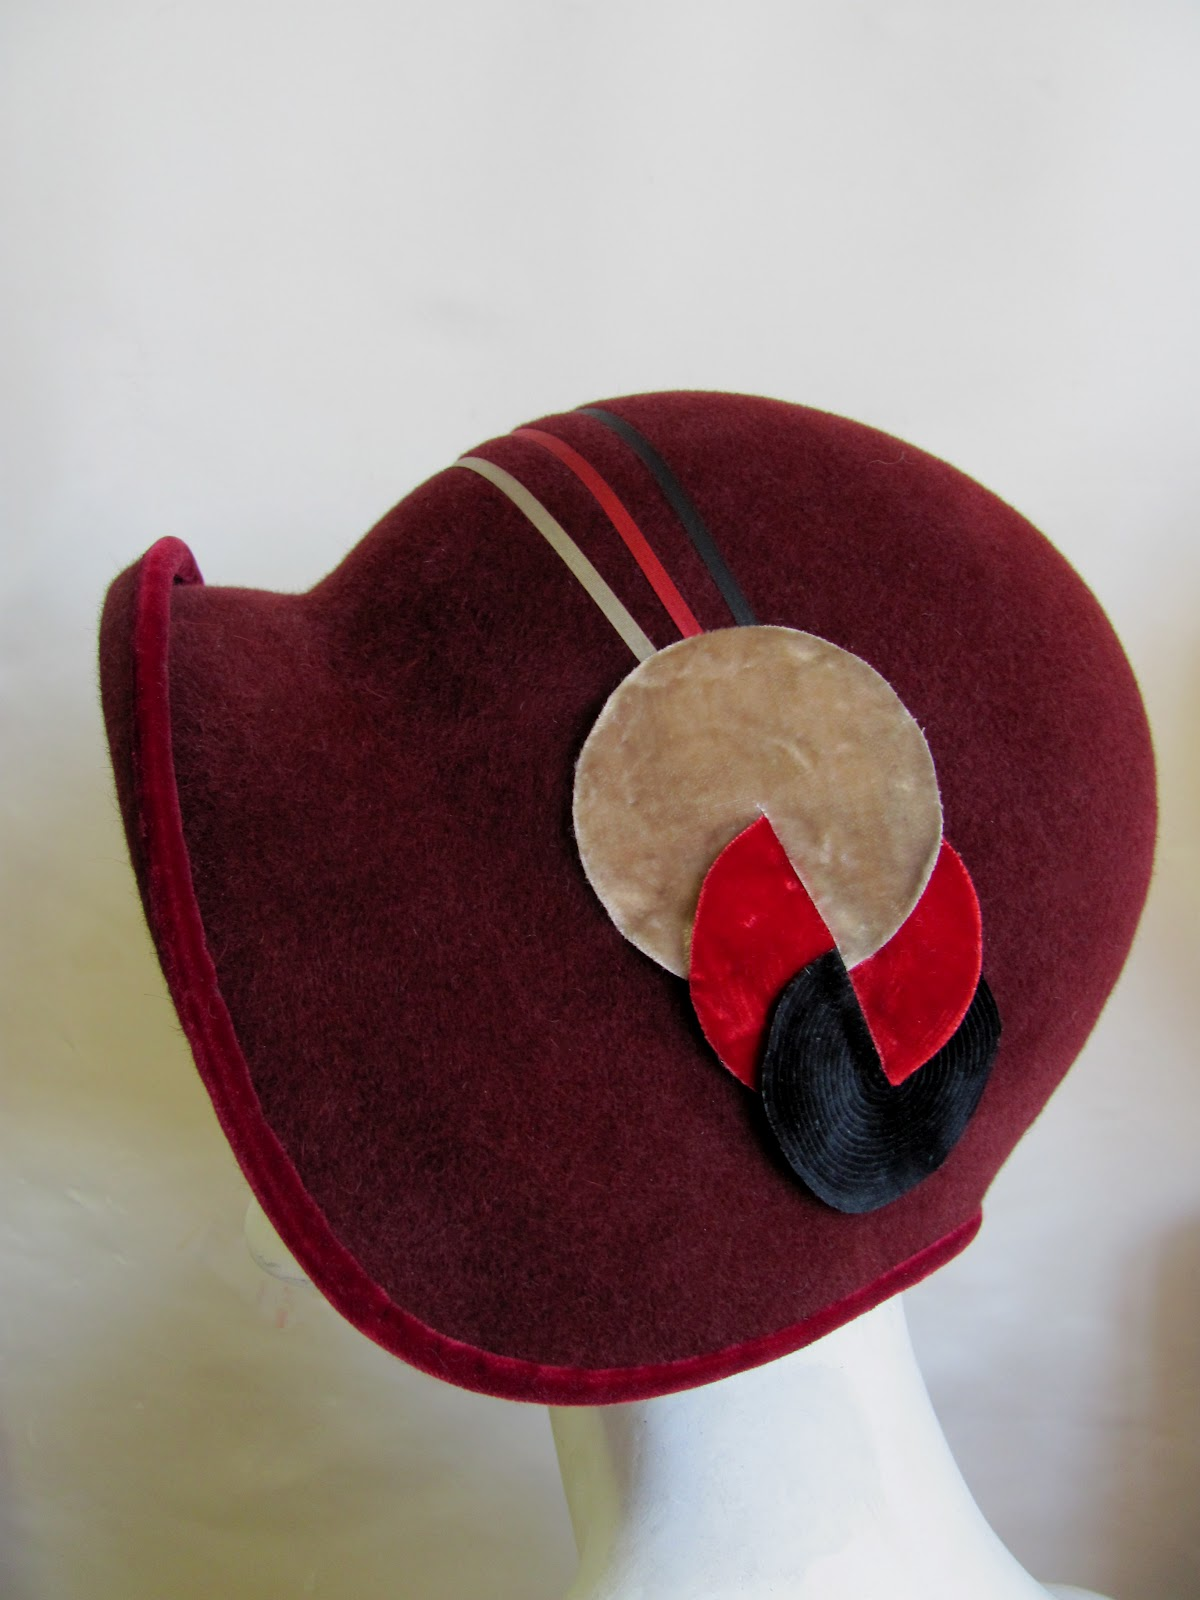 b57c178a8e0 Phryne s hat from Miss Fisher s Murder Mysteries - gorgeous velvet art deco  detail - same on the other side